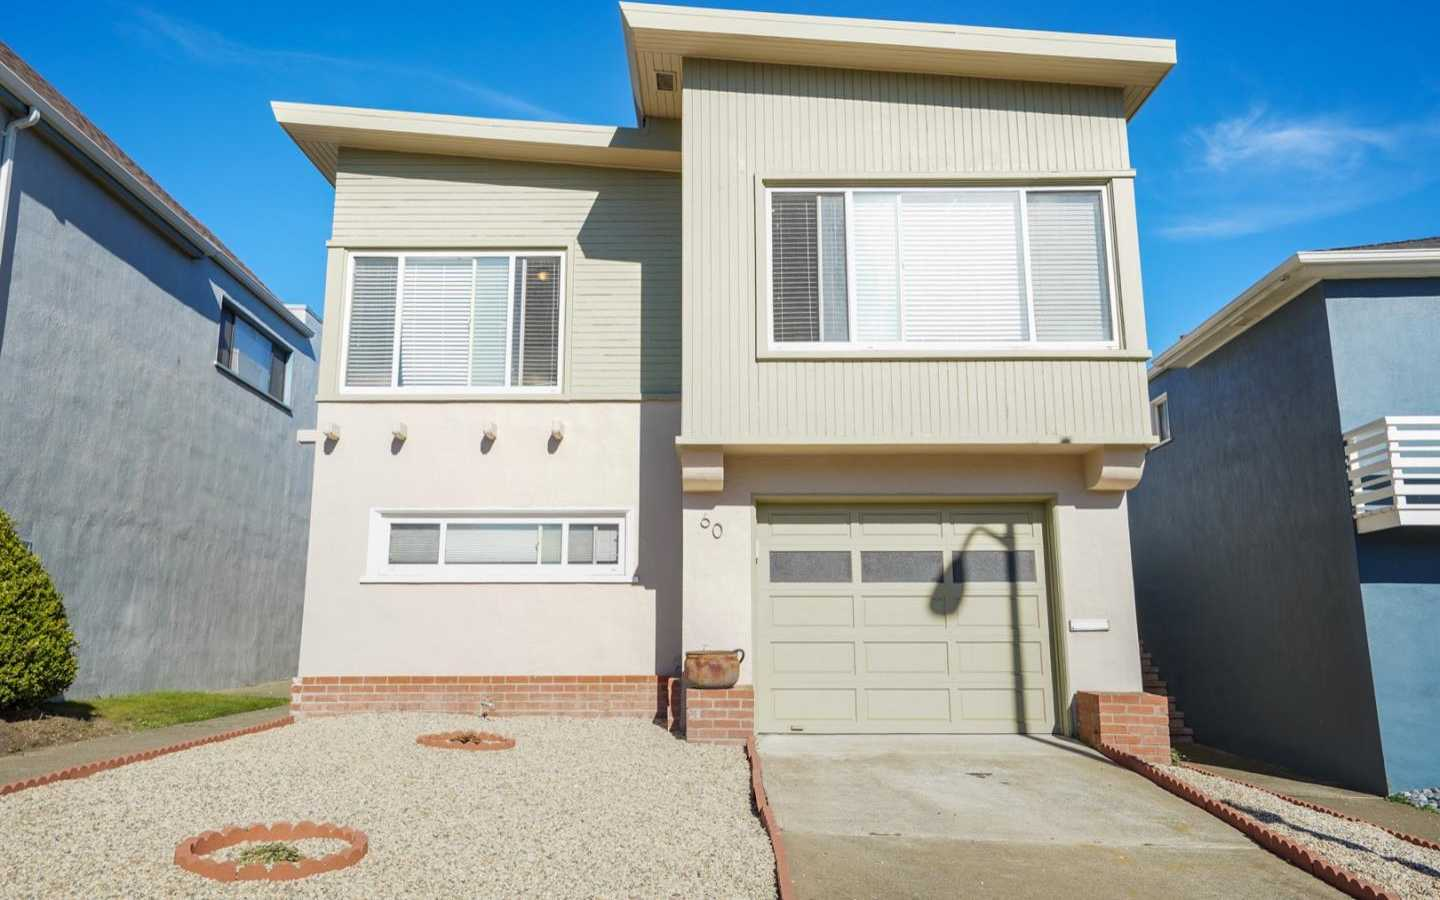 $1,288,000 - 4Br/2Ba -  for Sale in Daly City